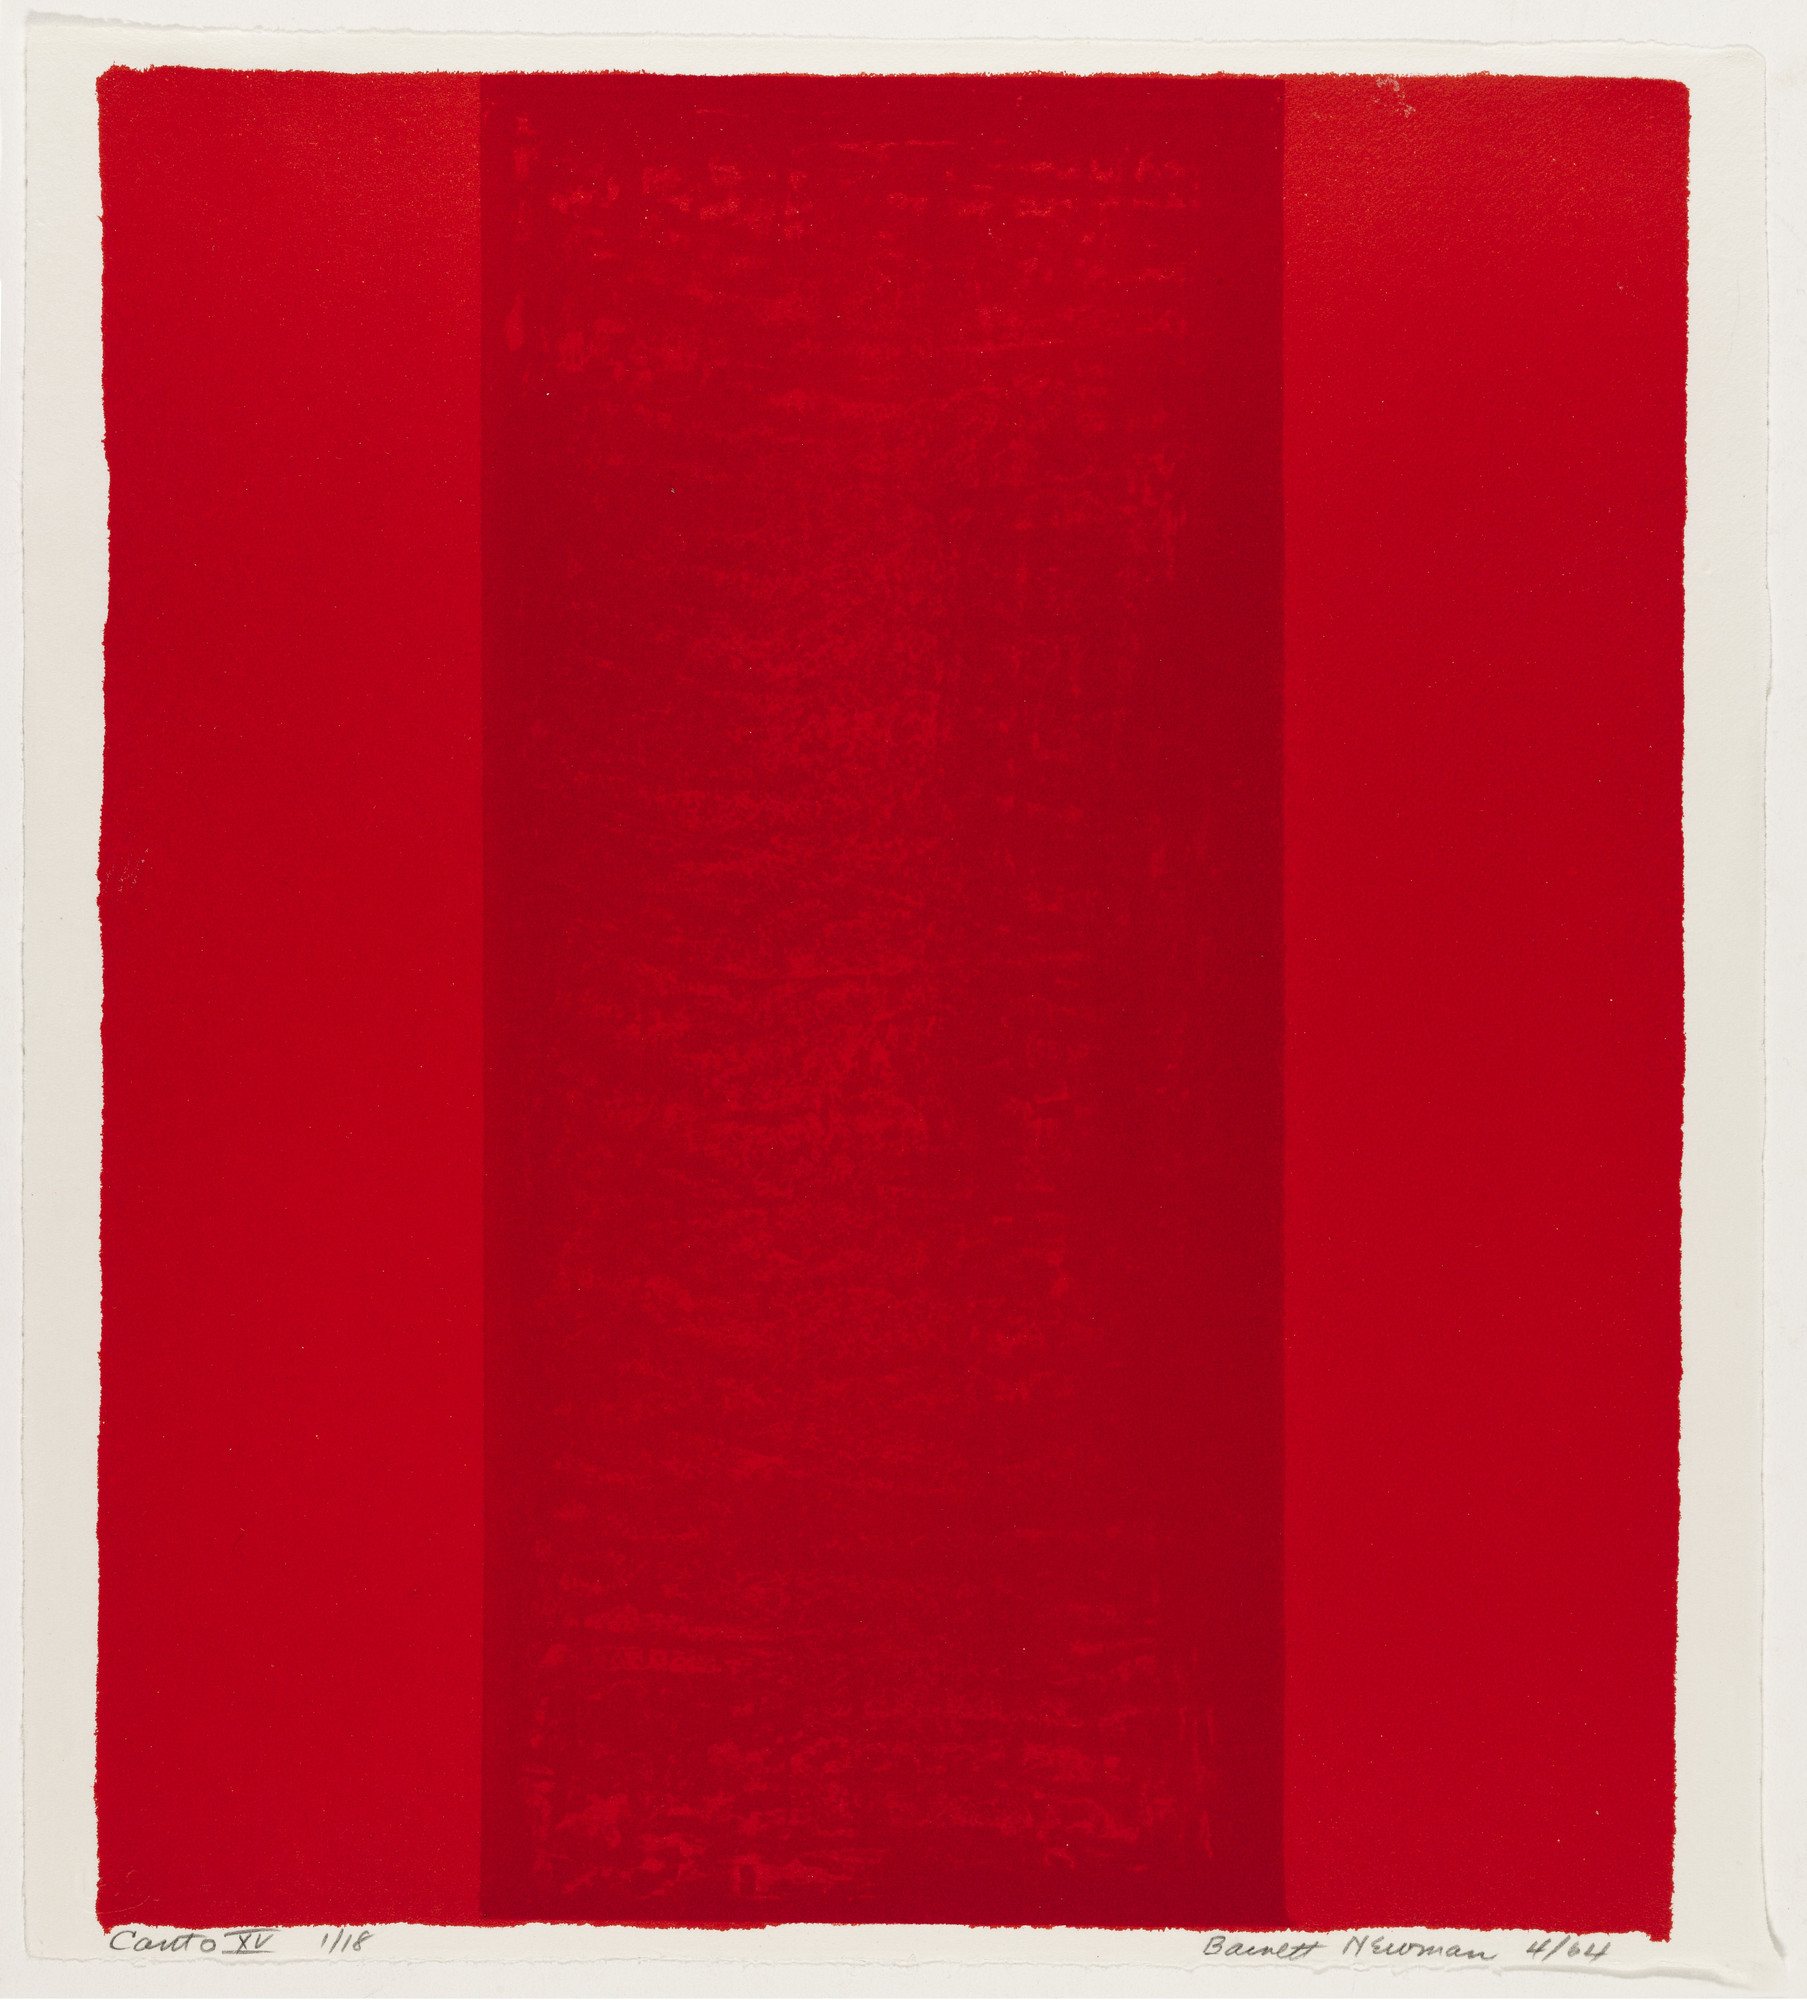 Barnett Newman. Canto XV from 18 Cantos. 1964